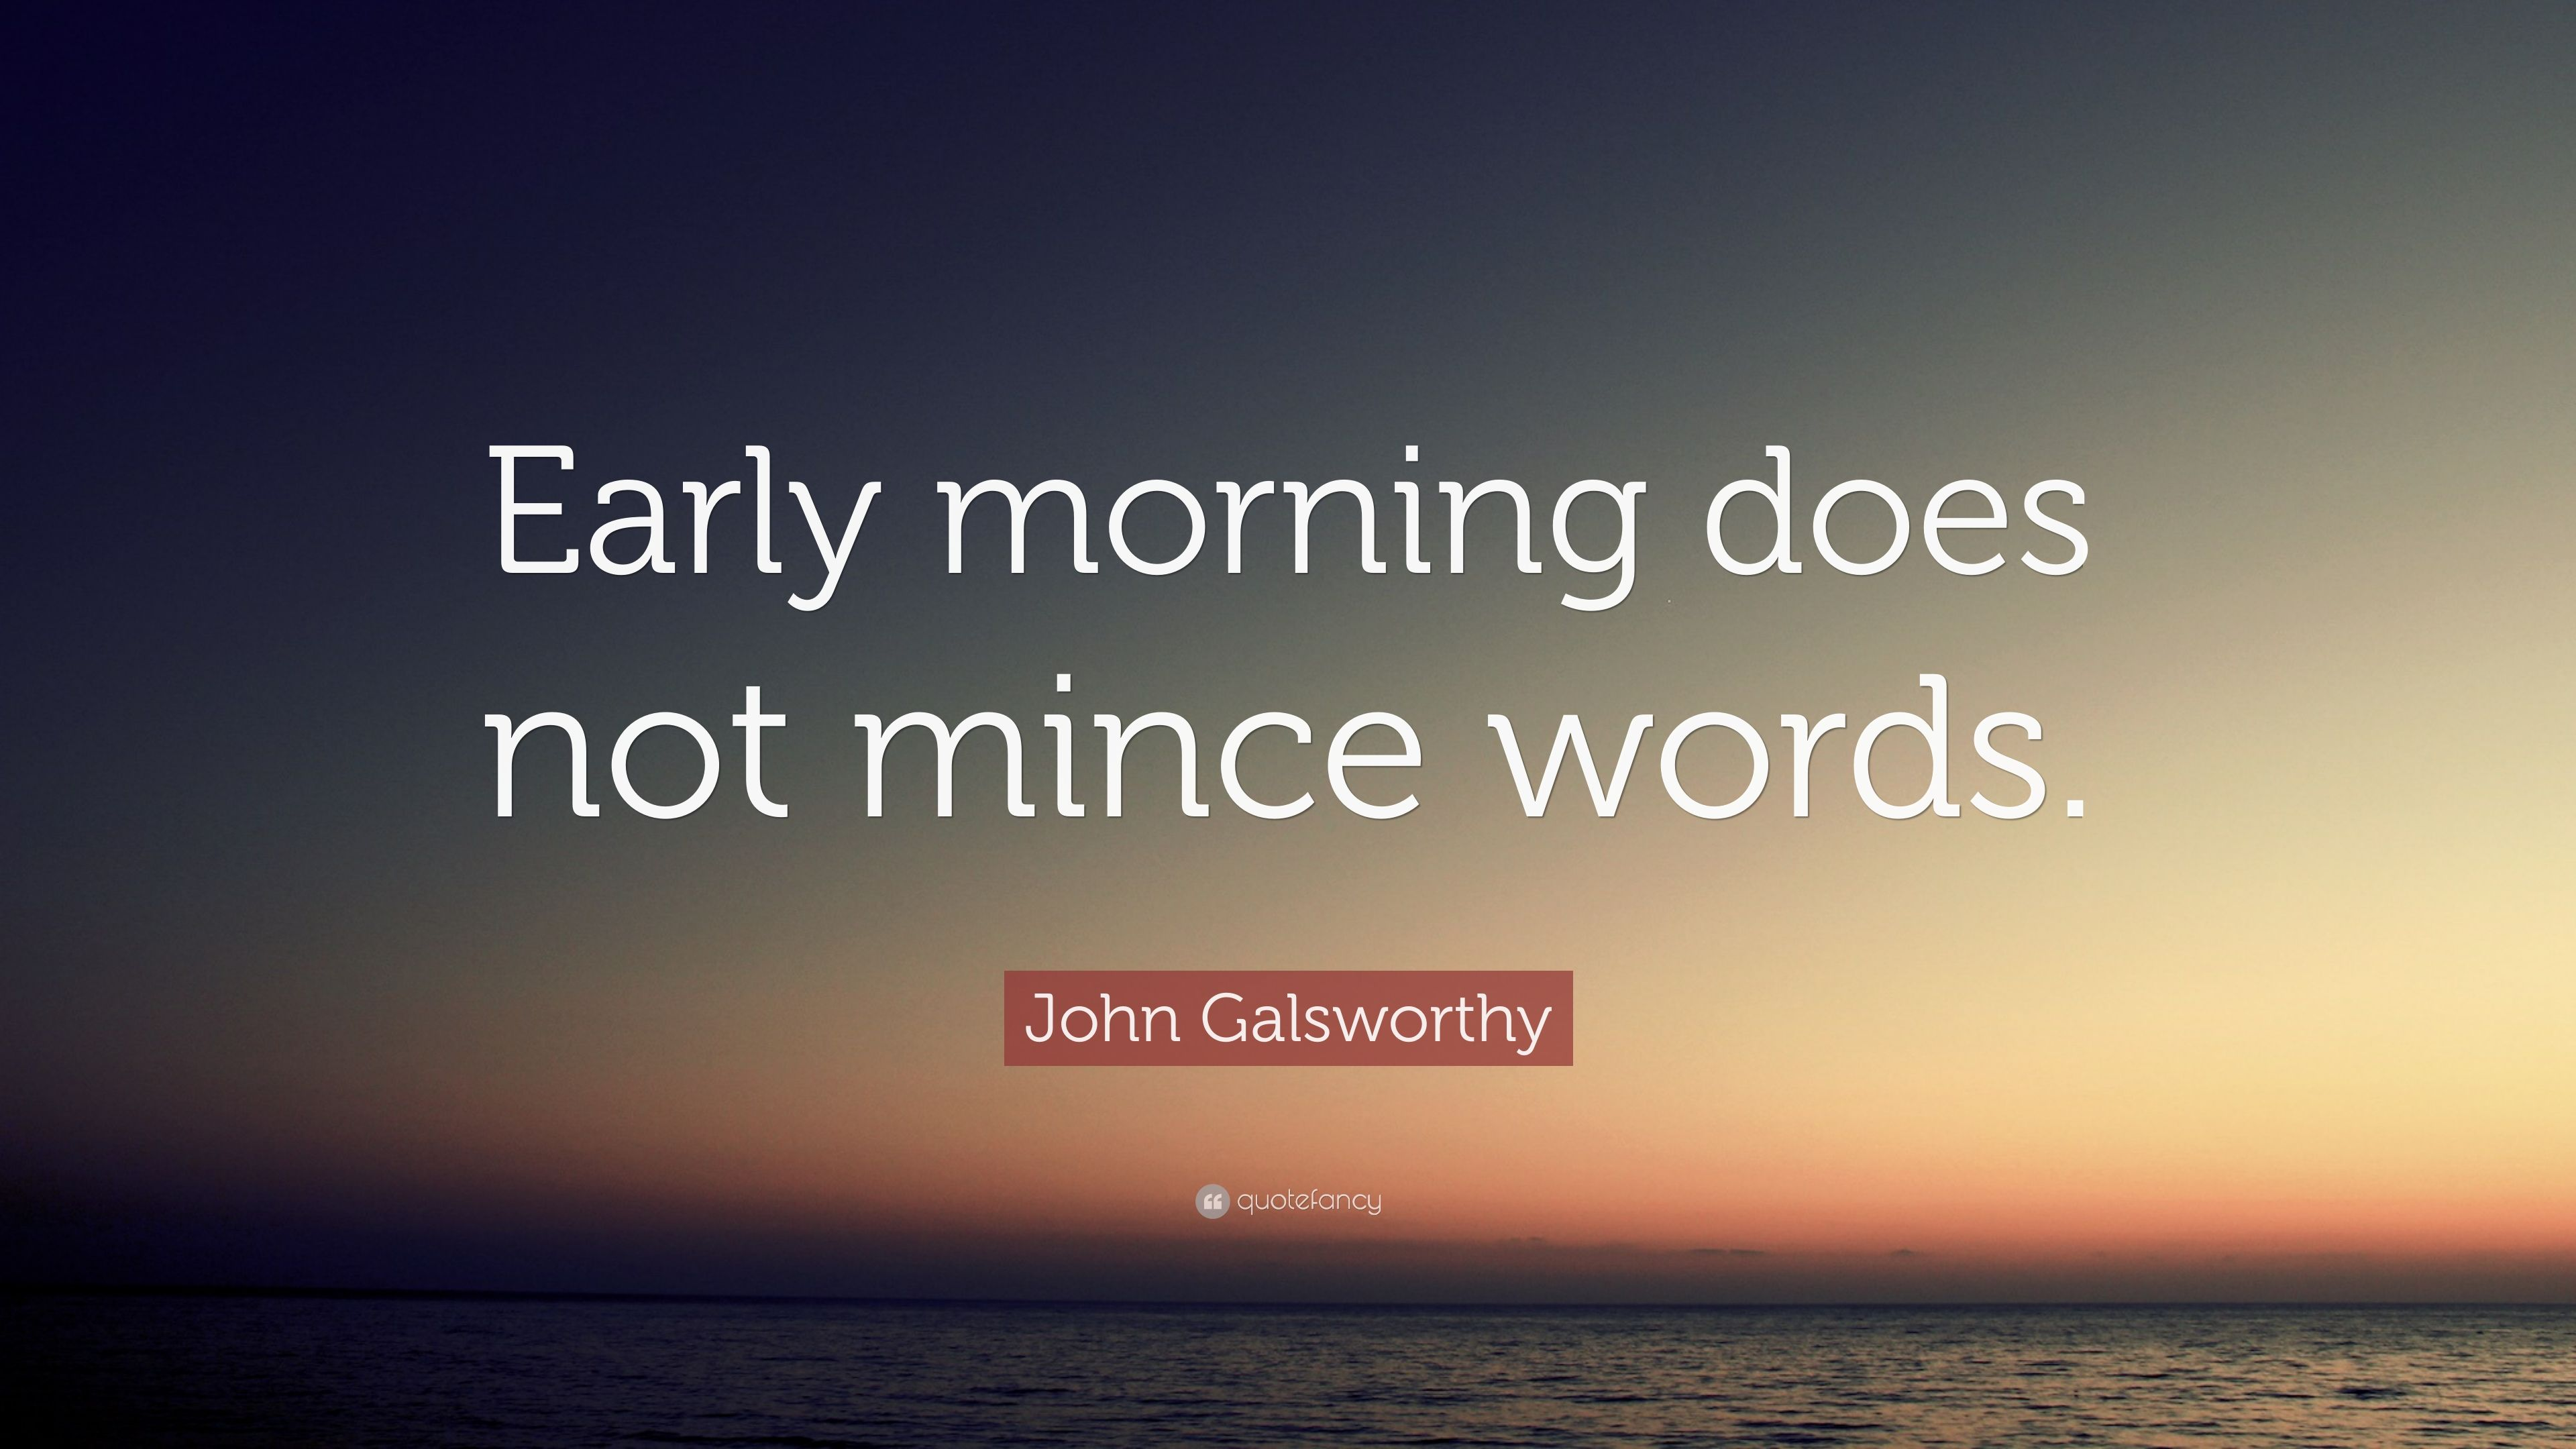 words to describe early morning